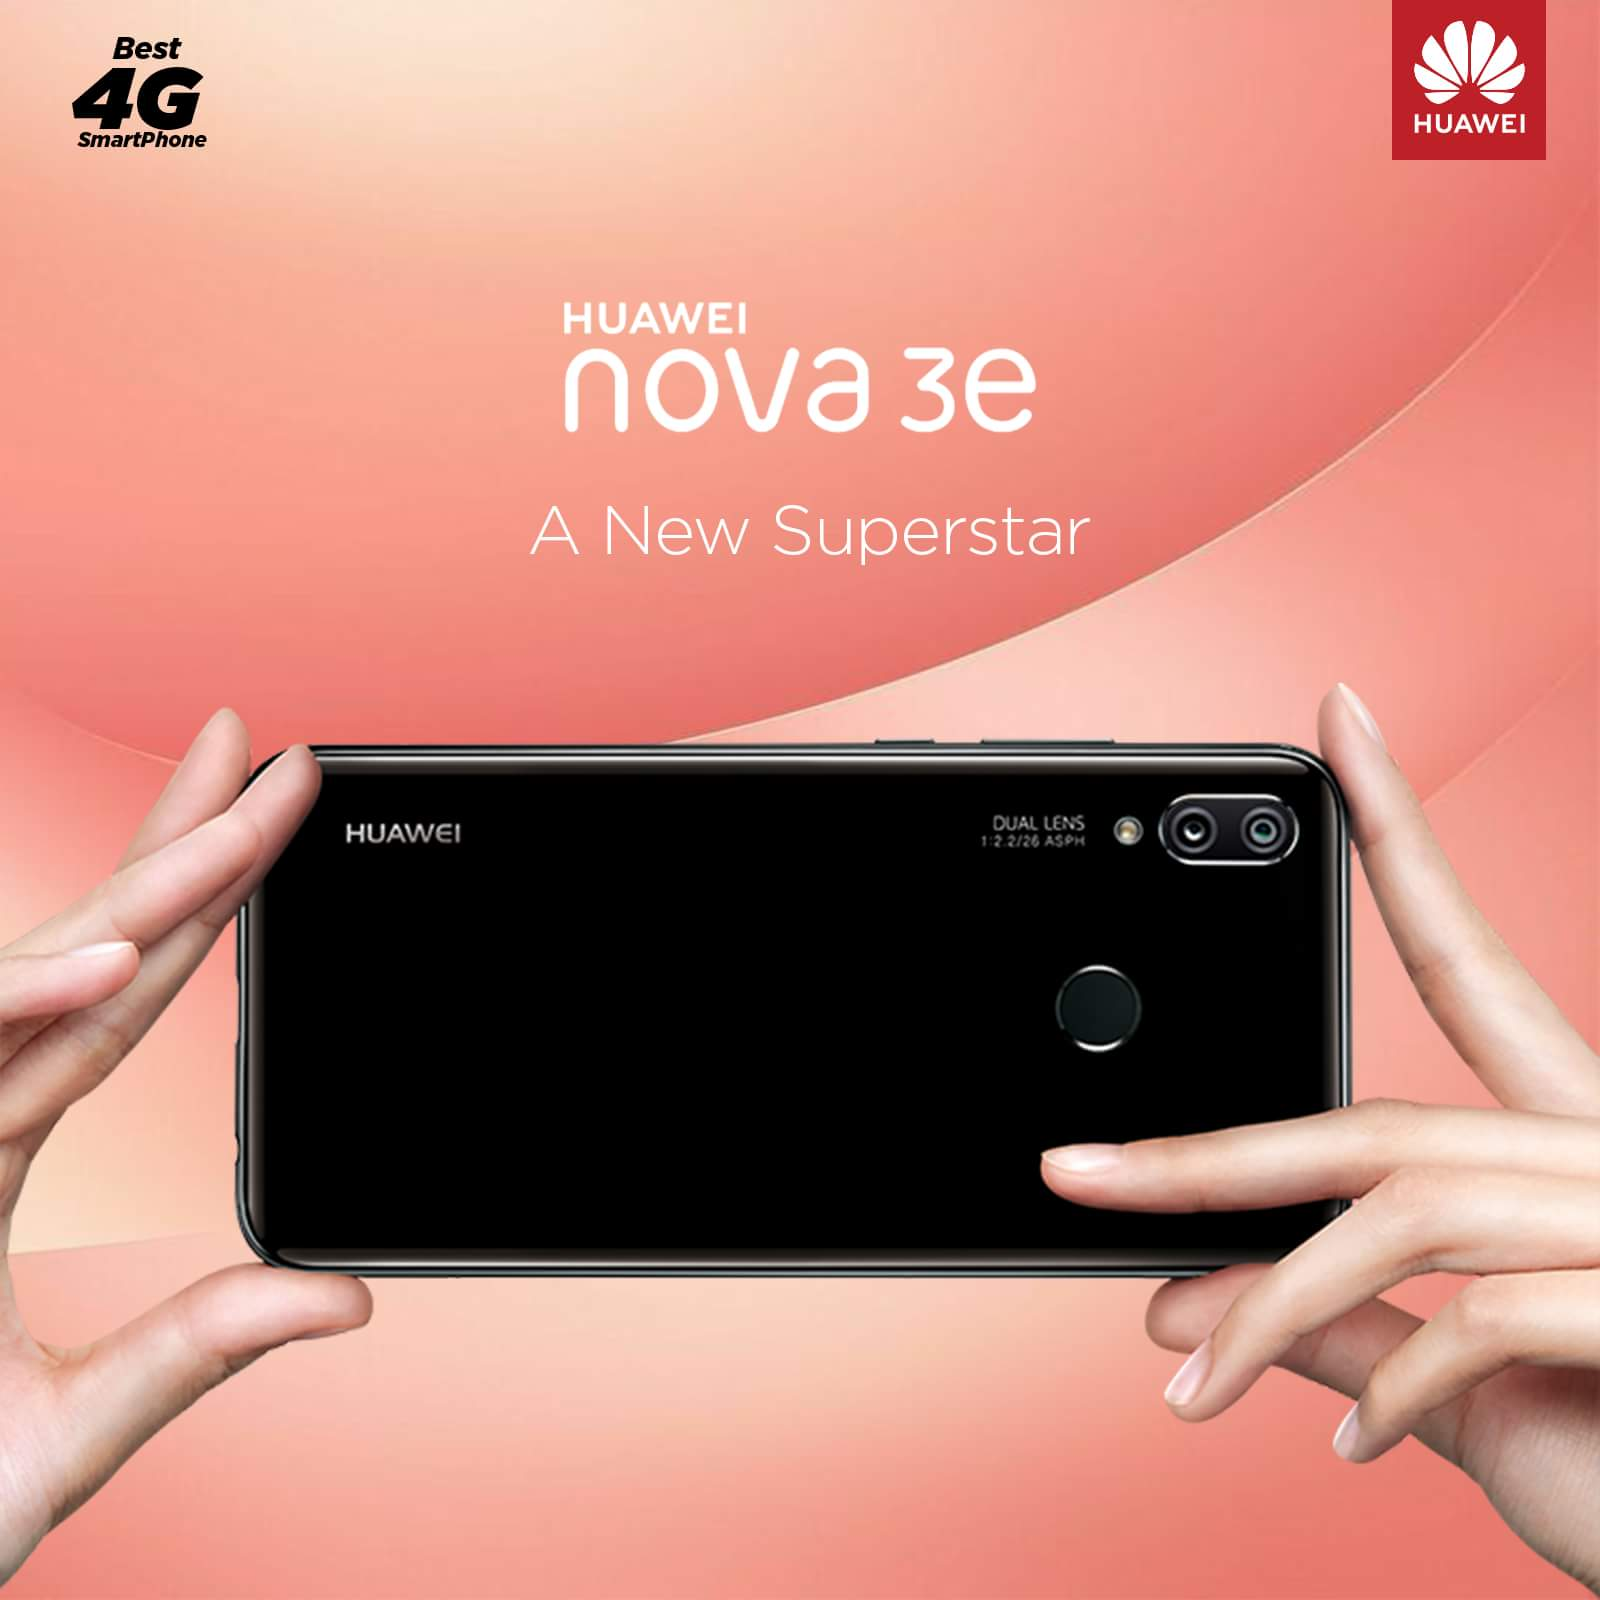 Nova 3E is also known P20 Lite, which is available now at BDT 27,990/-.